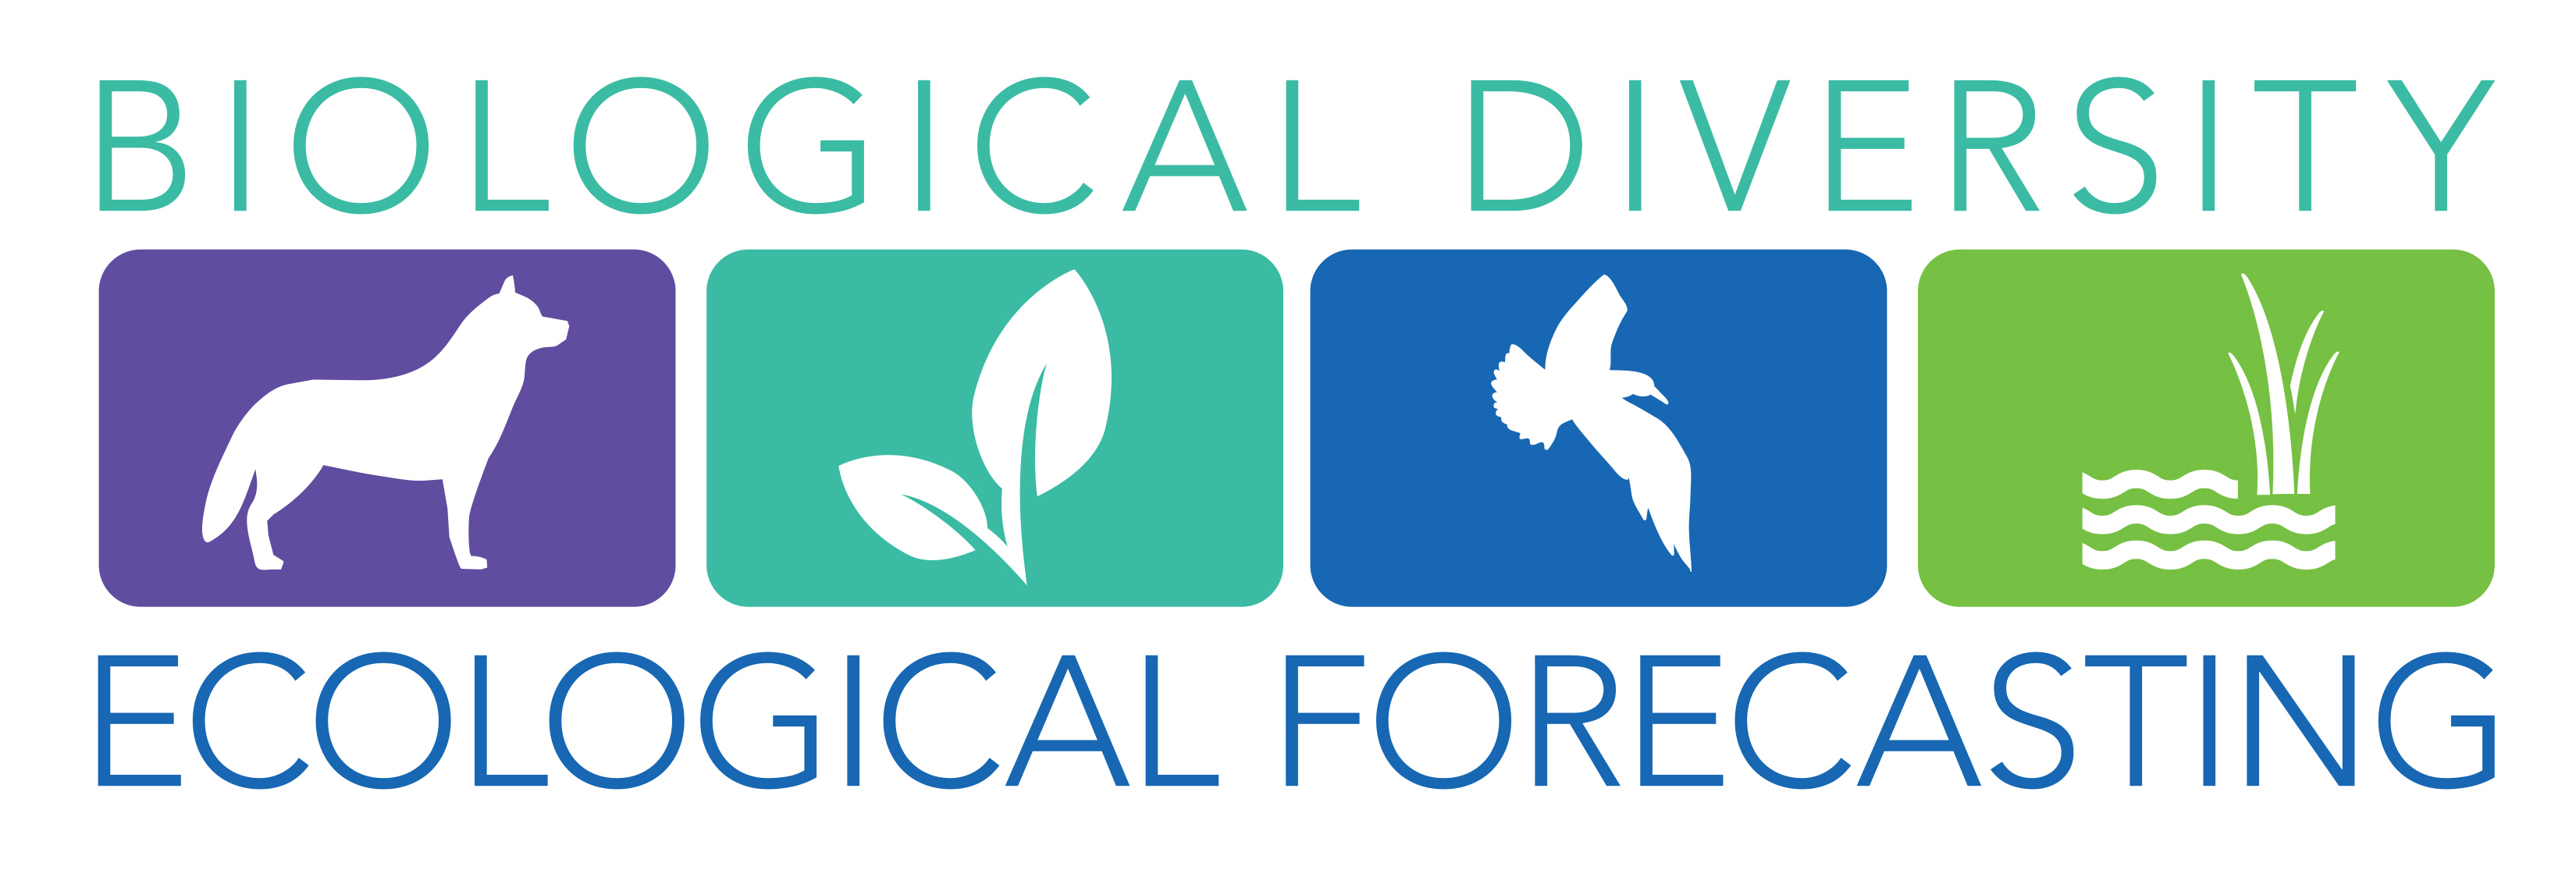 Biological Diversity and Ecological Forecasting Campaign logo , which contains images of a wolf, a leaf, a bird and aquatic vegetation